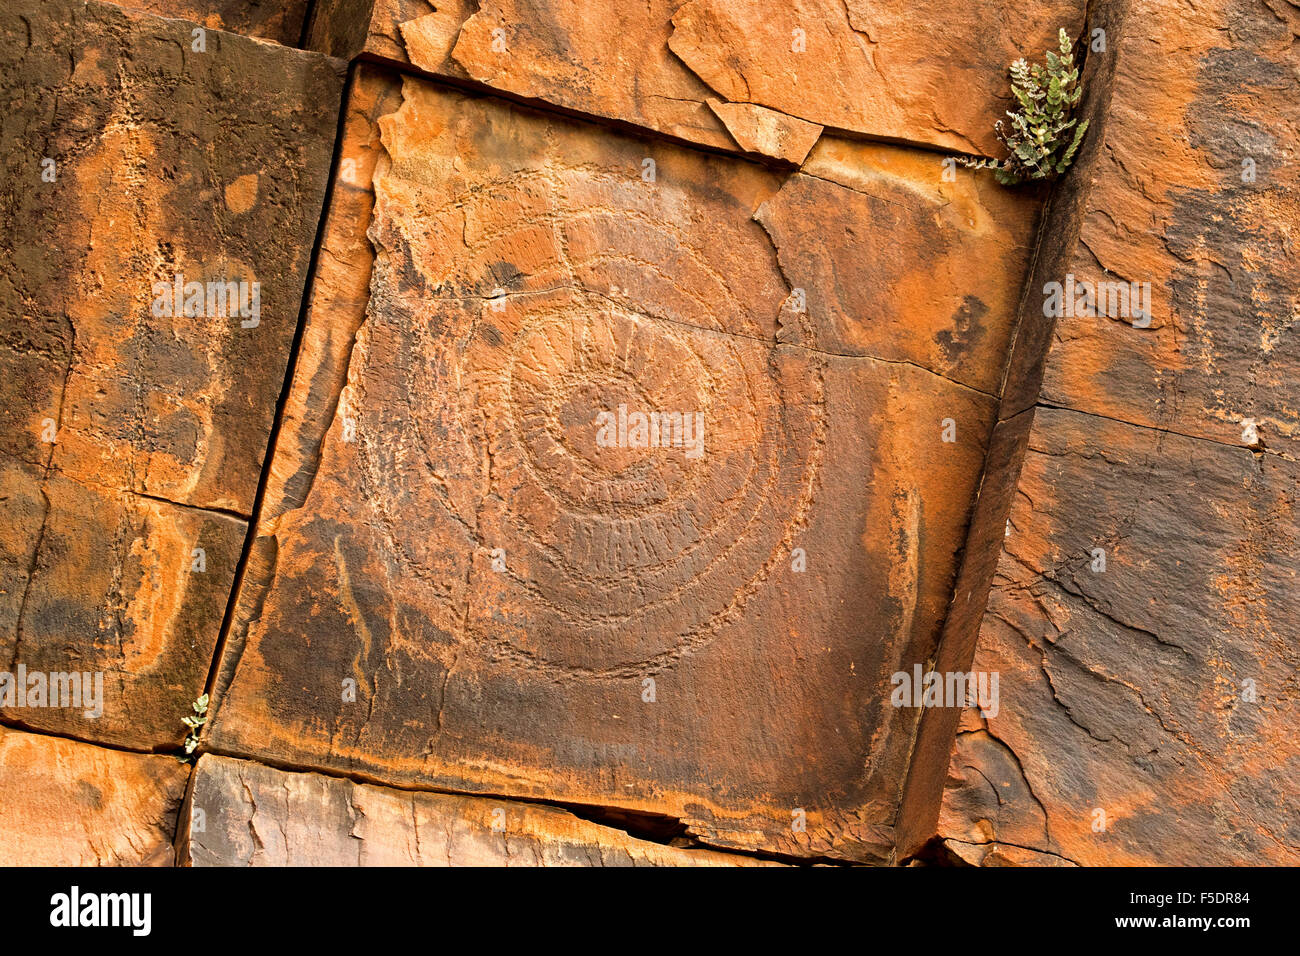 Ancient aboriginal rock art engravings symbols of initiation rites ancient aboriginal rock art engravings symbols of initiation rites on red stone walls in flinders ranges in outback australia biocorpaavc Image collections